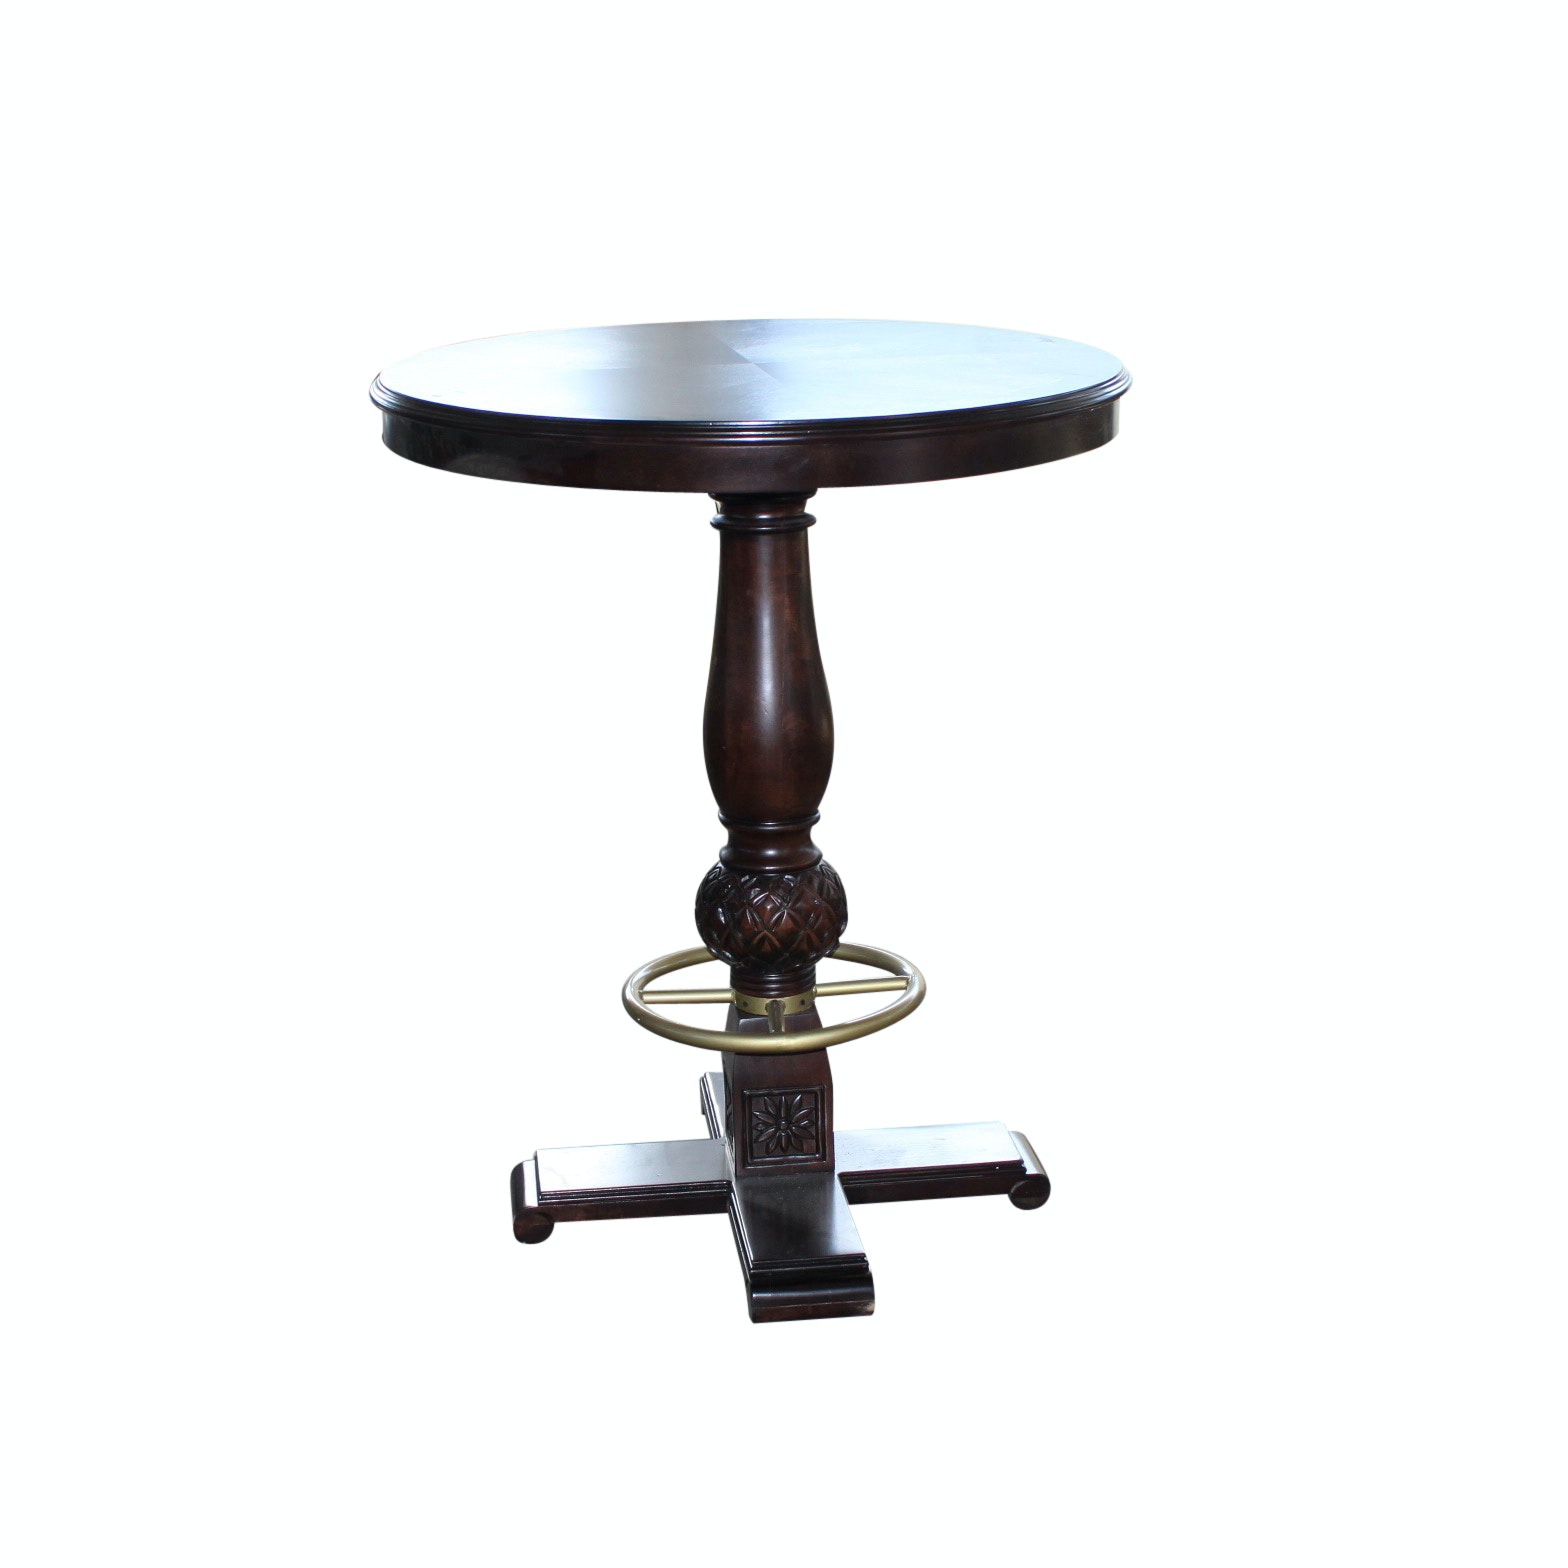 Mahogany Finished Wood Bar Table with Metal Footrest